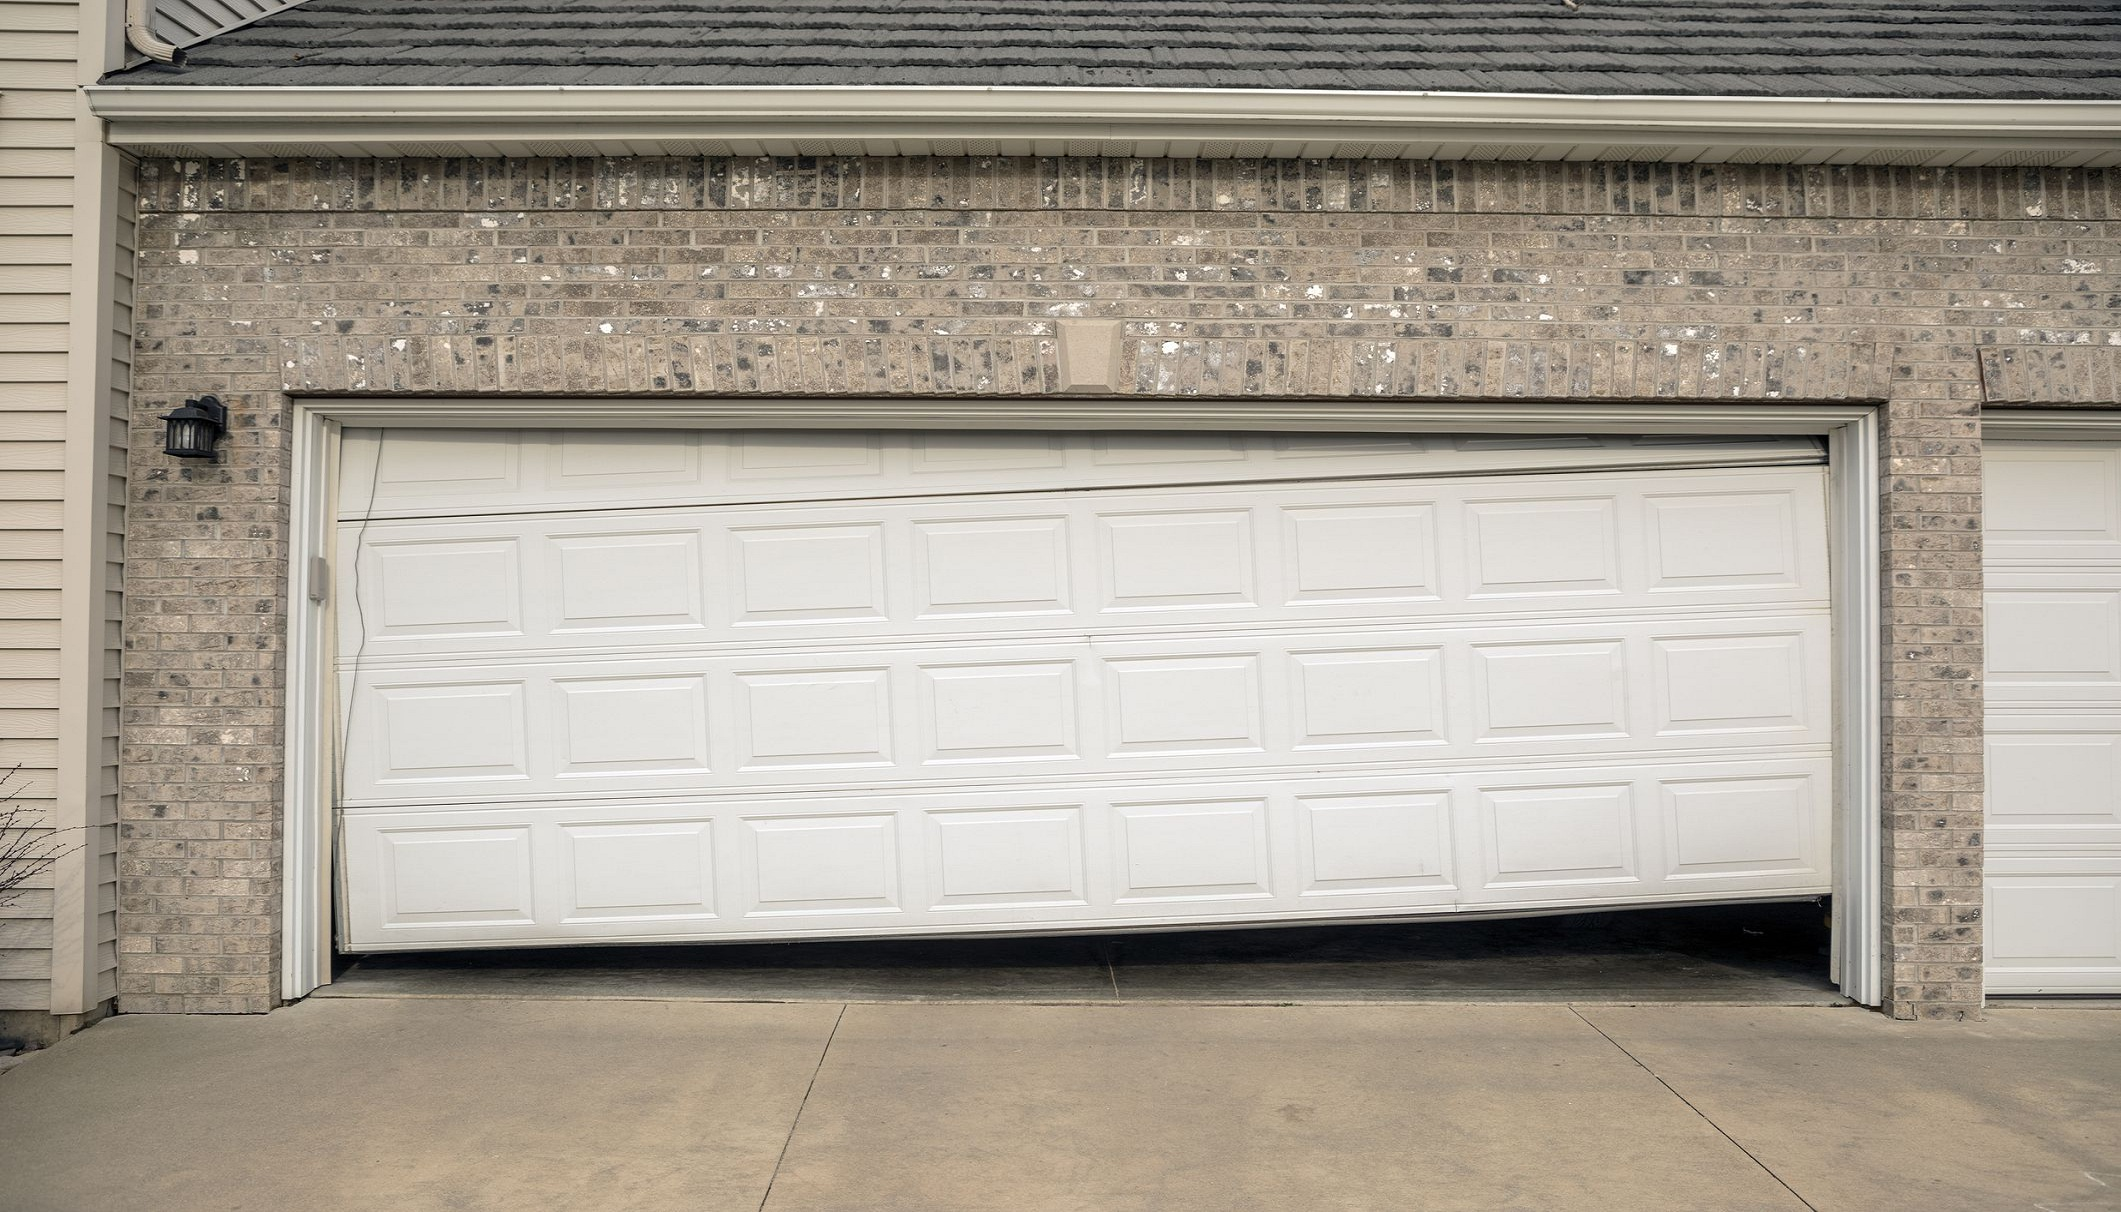 How Much Does it Cost Replace or Repair a Damaged Garage Door?